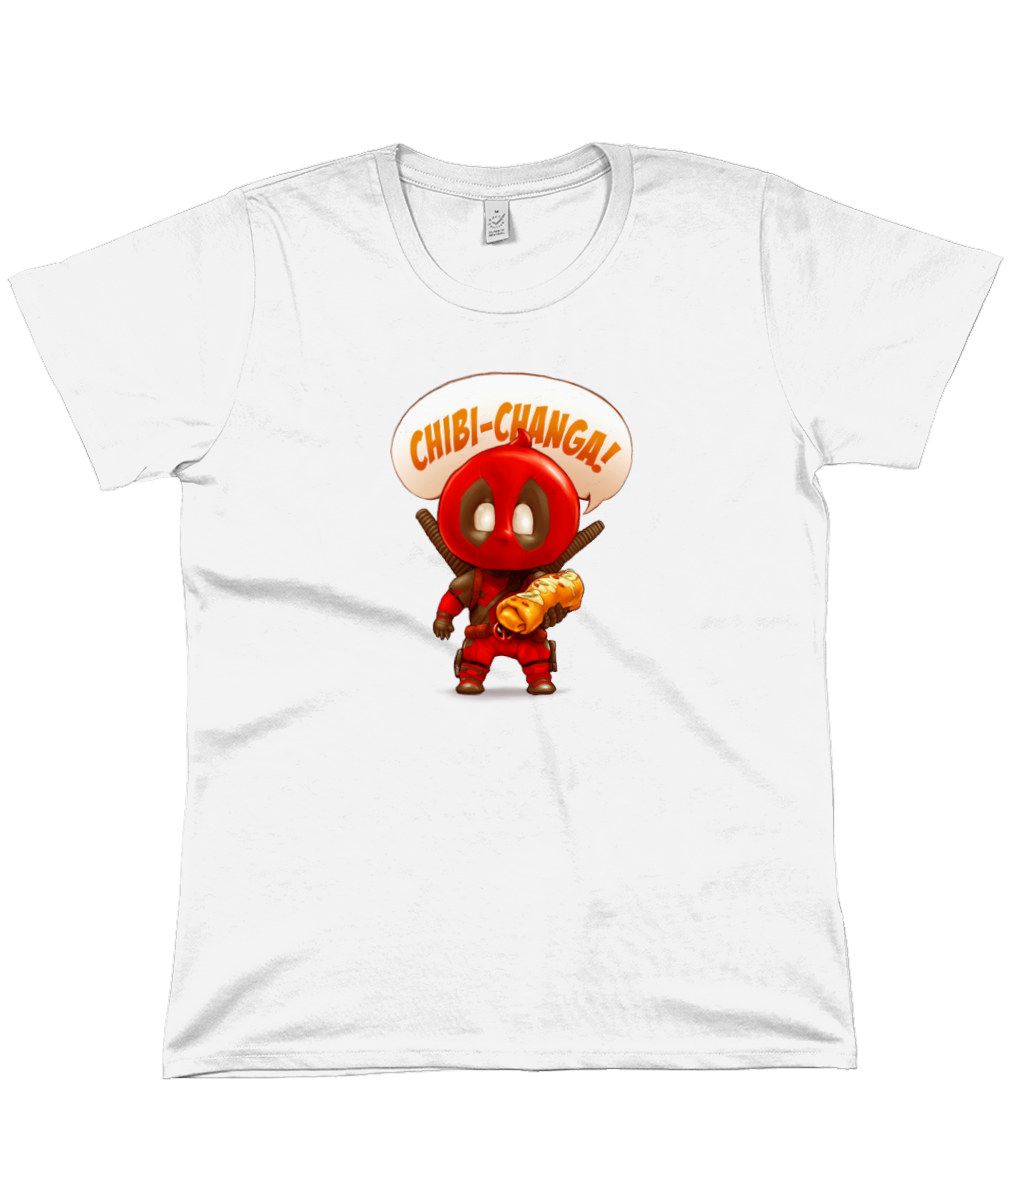 Marvel: Chibi-Changa Deadpool Women's Flowy Tee